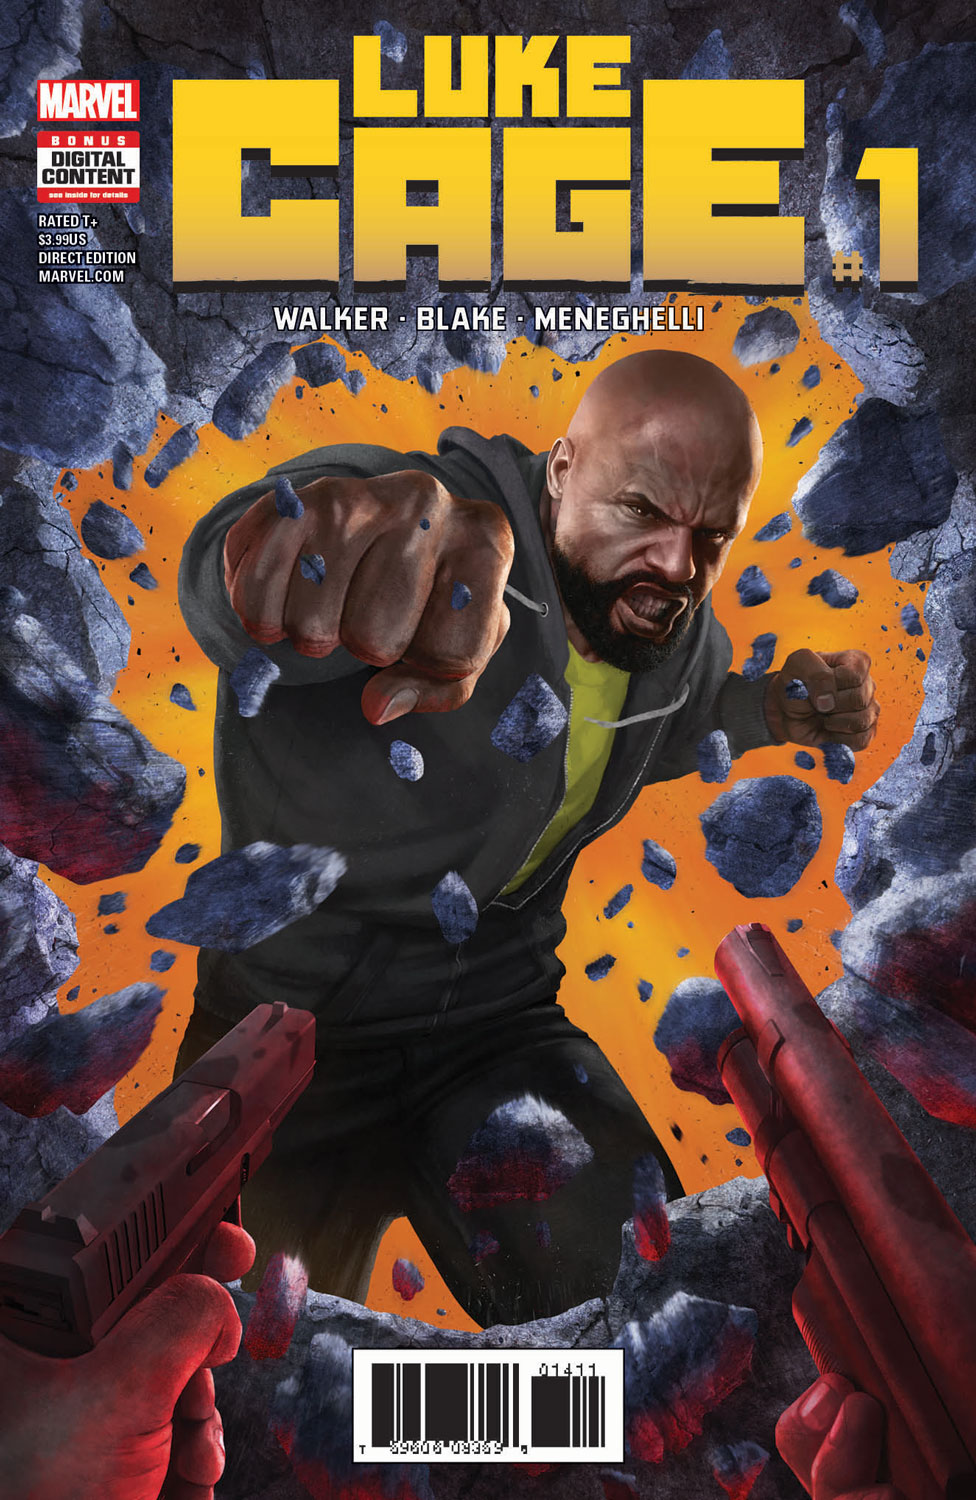 Caged Vengeance – Your First Look Inside LUKE CAGE #1!